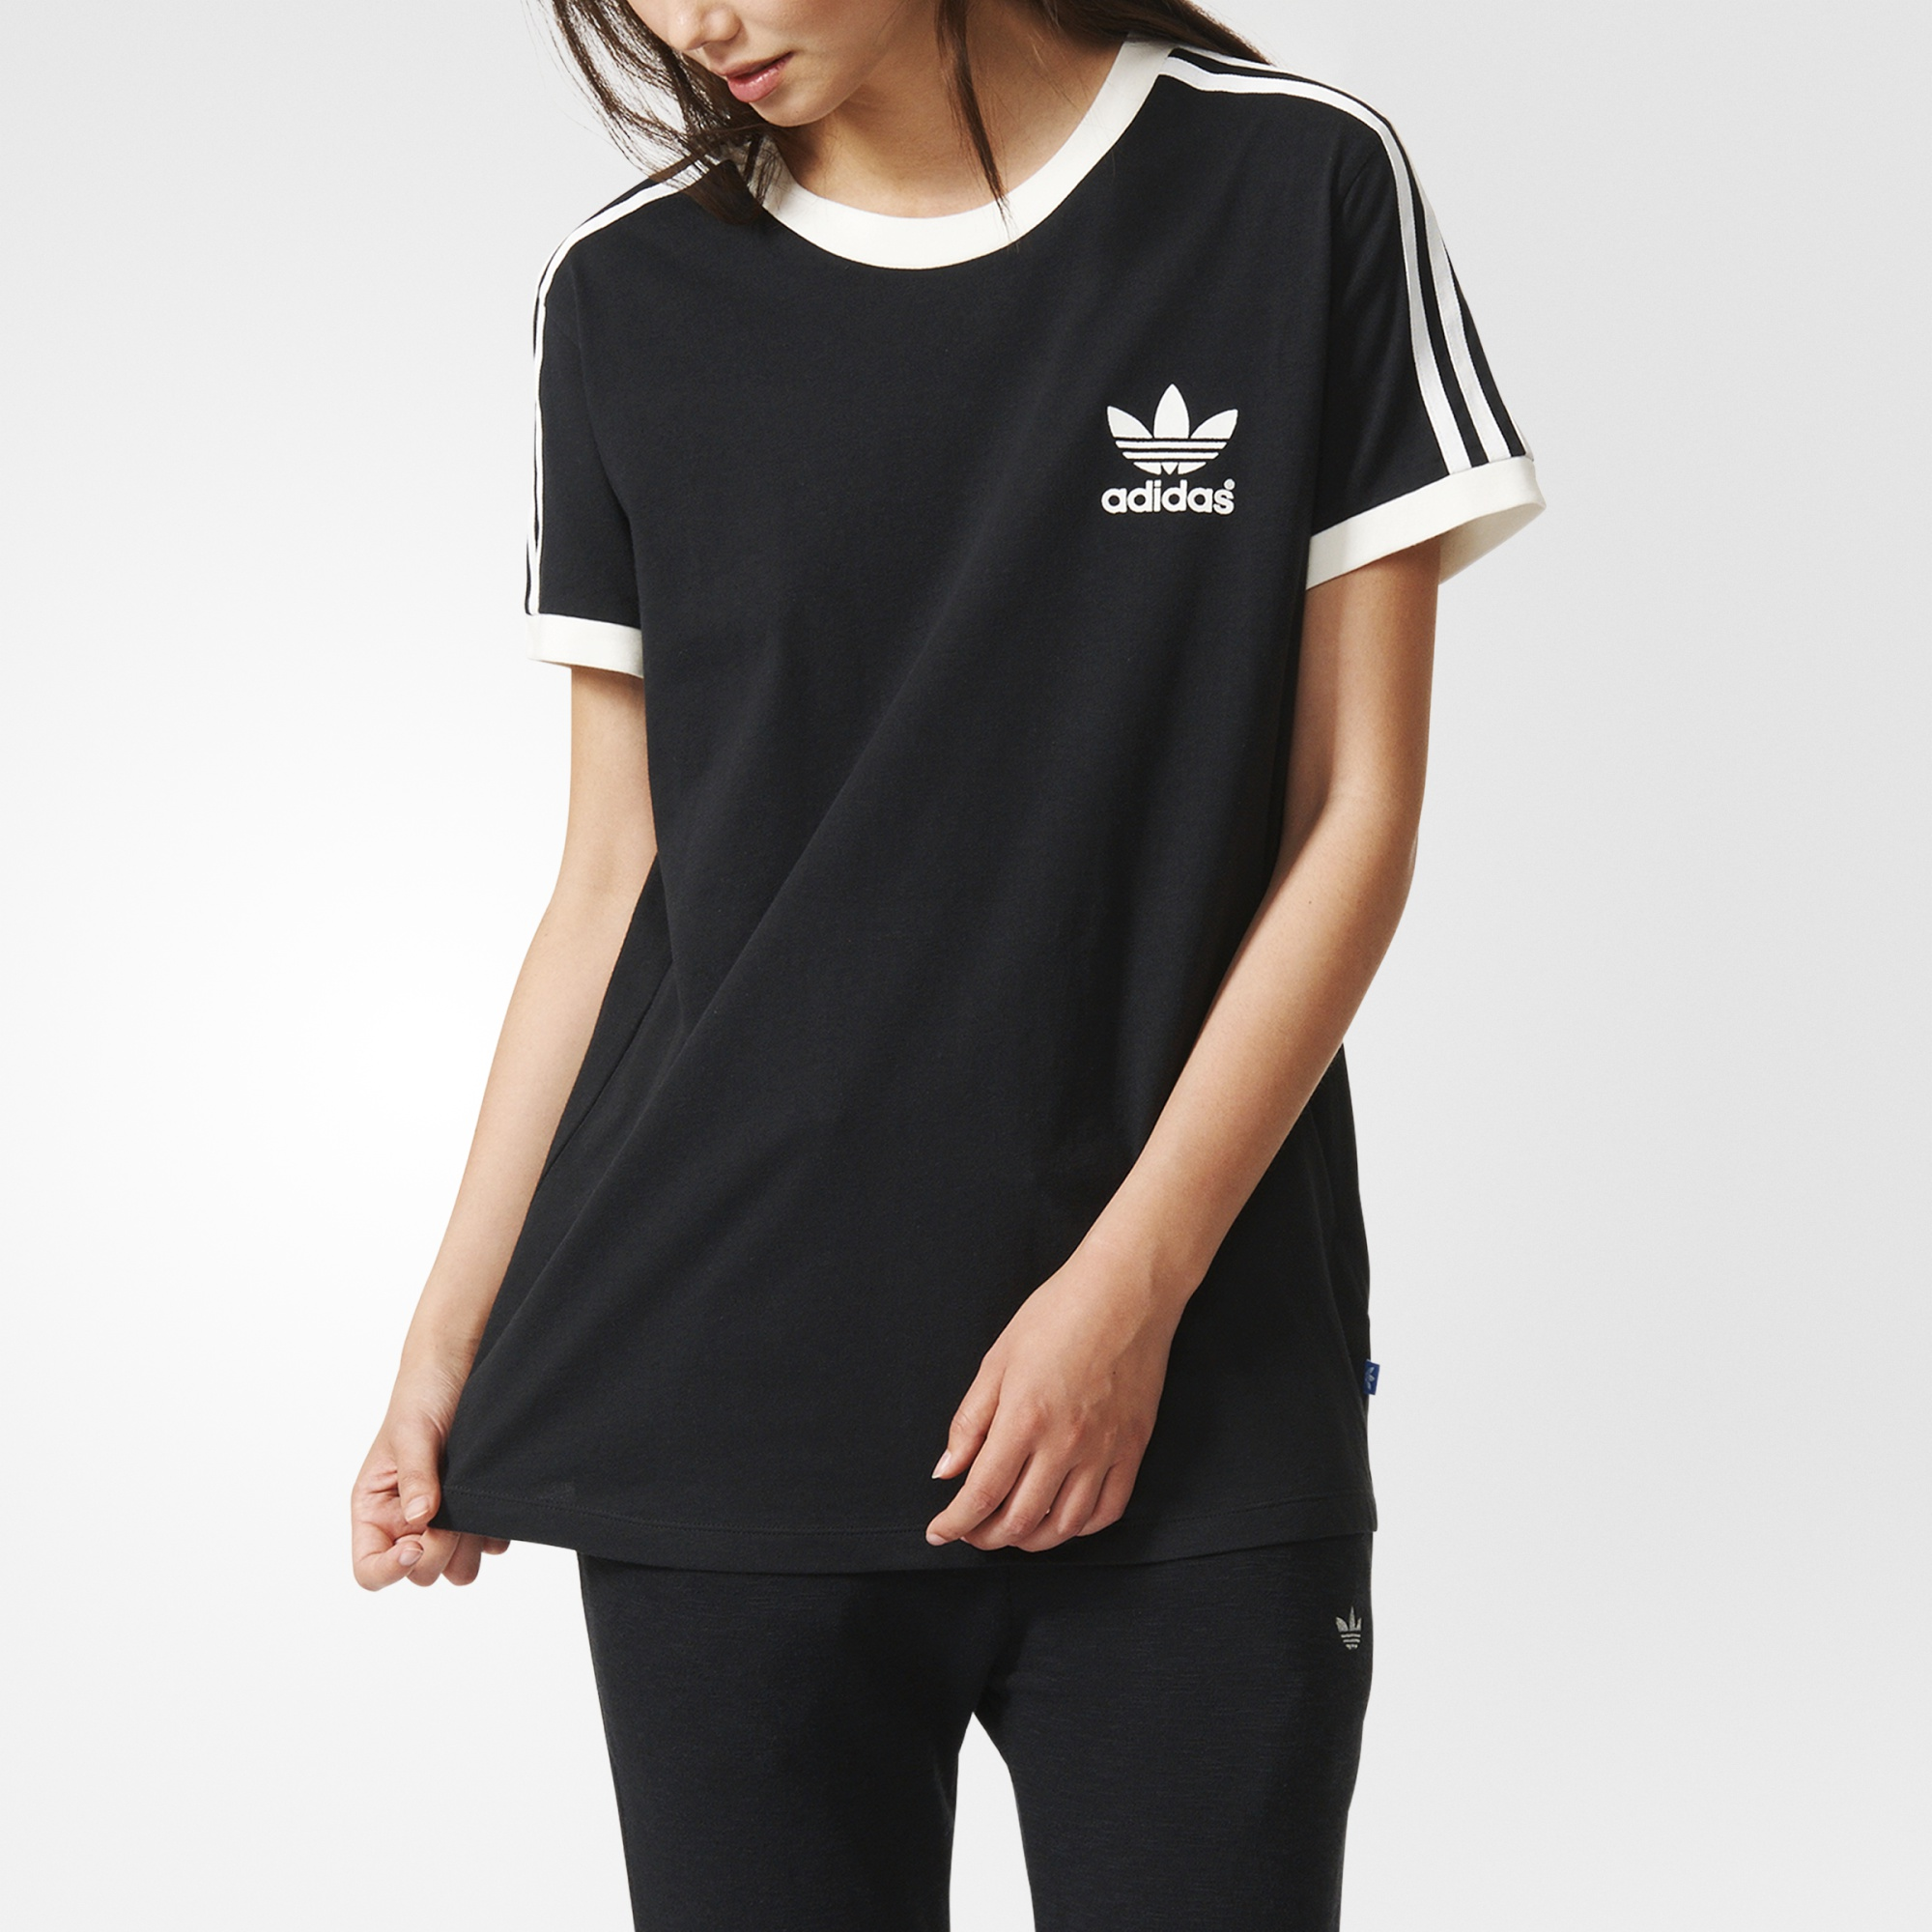 Adidas 3 stripes tee black adidas uk Womens black tee shirt